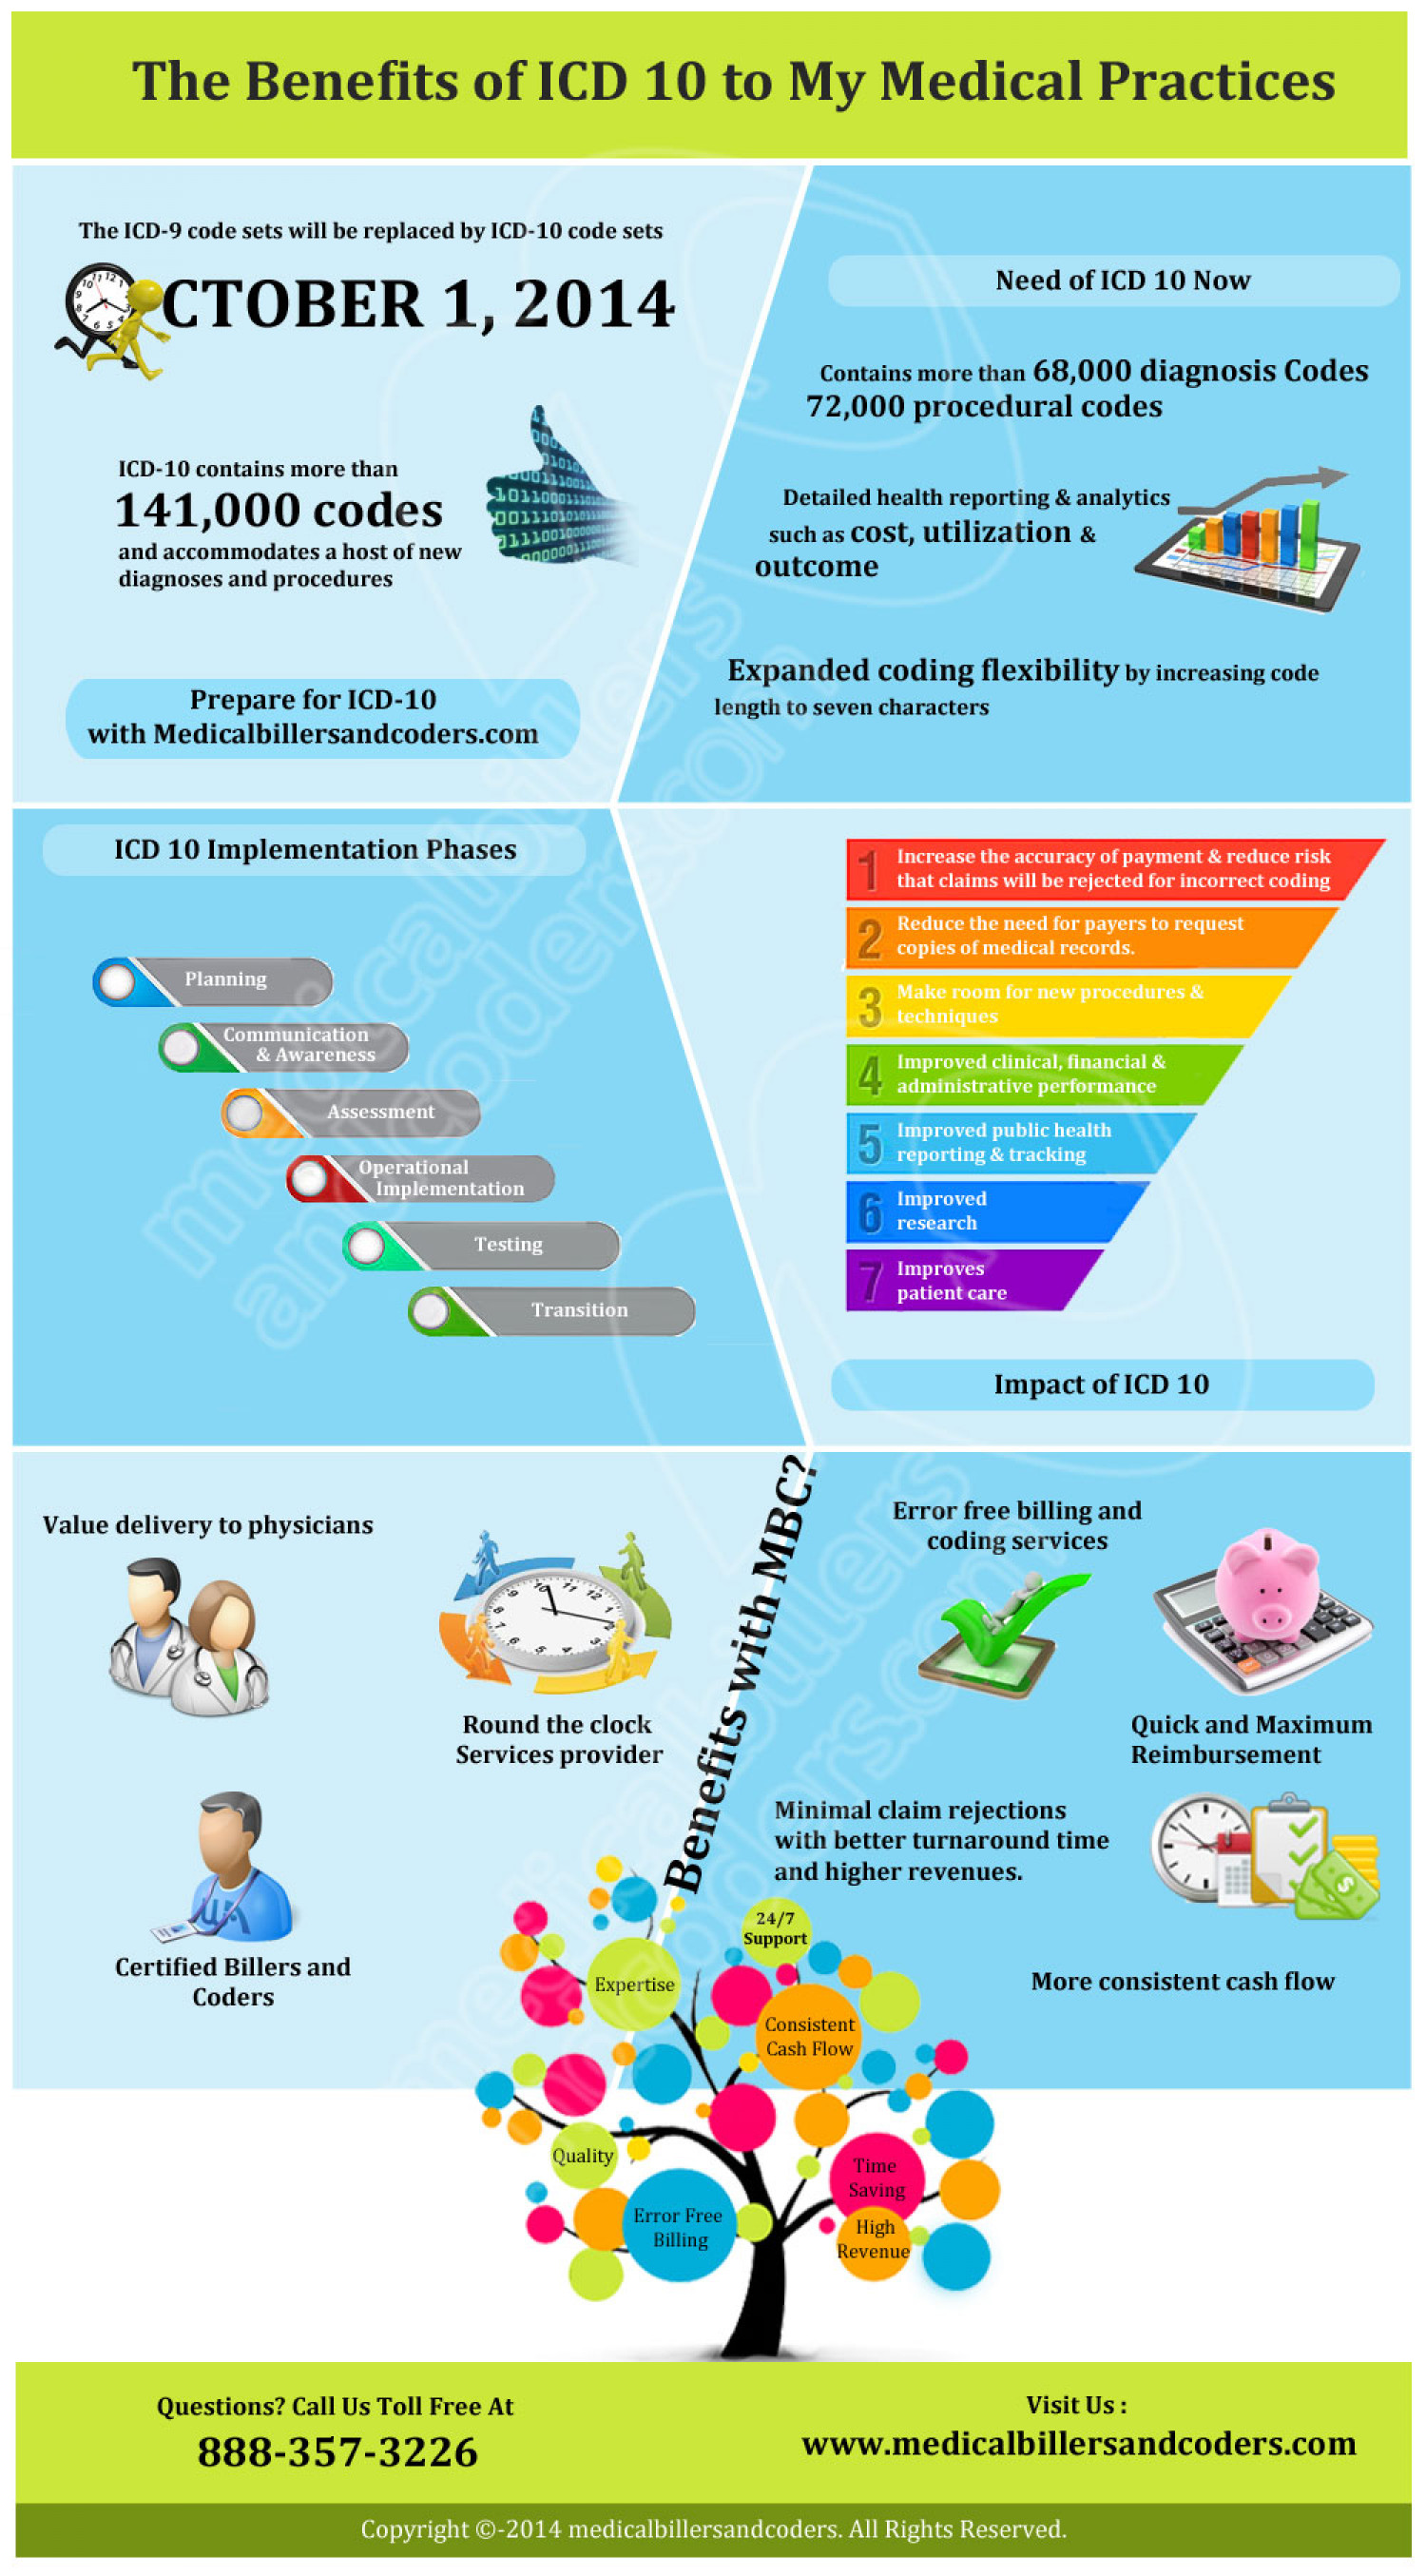 The Benefits of ICD 10 to My Medical Practices Infographic